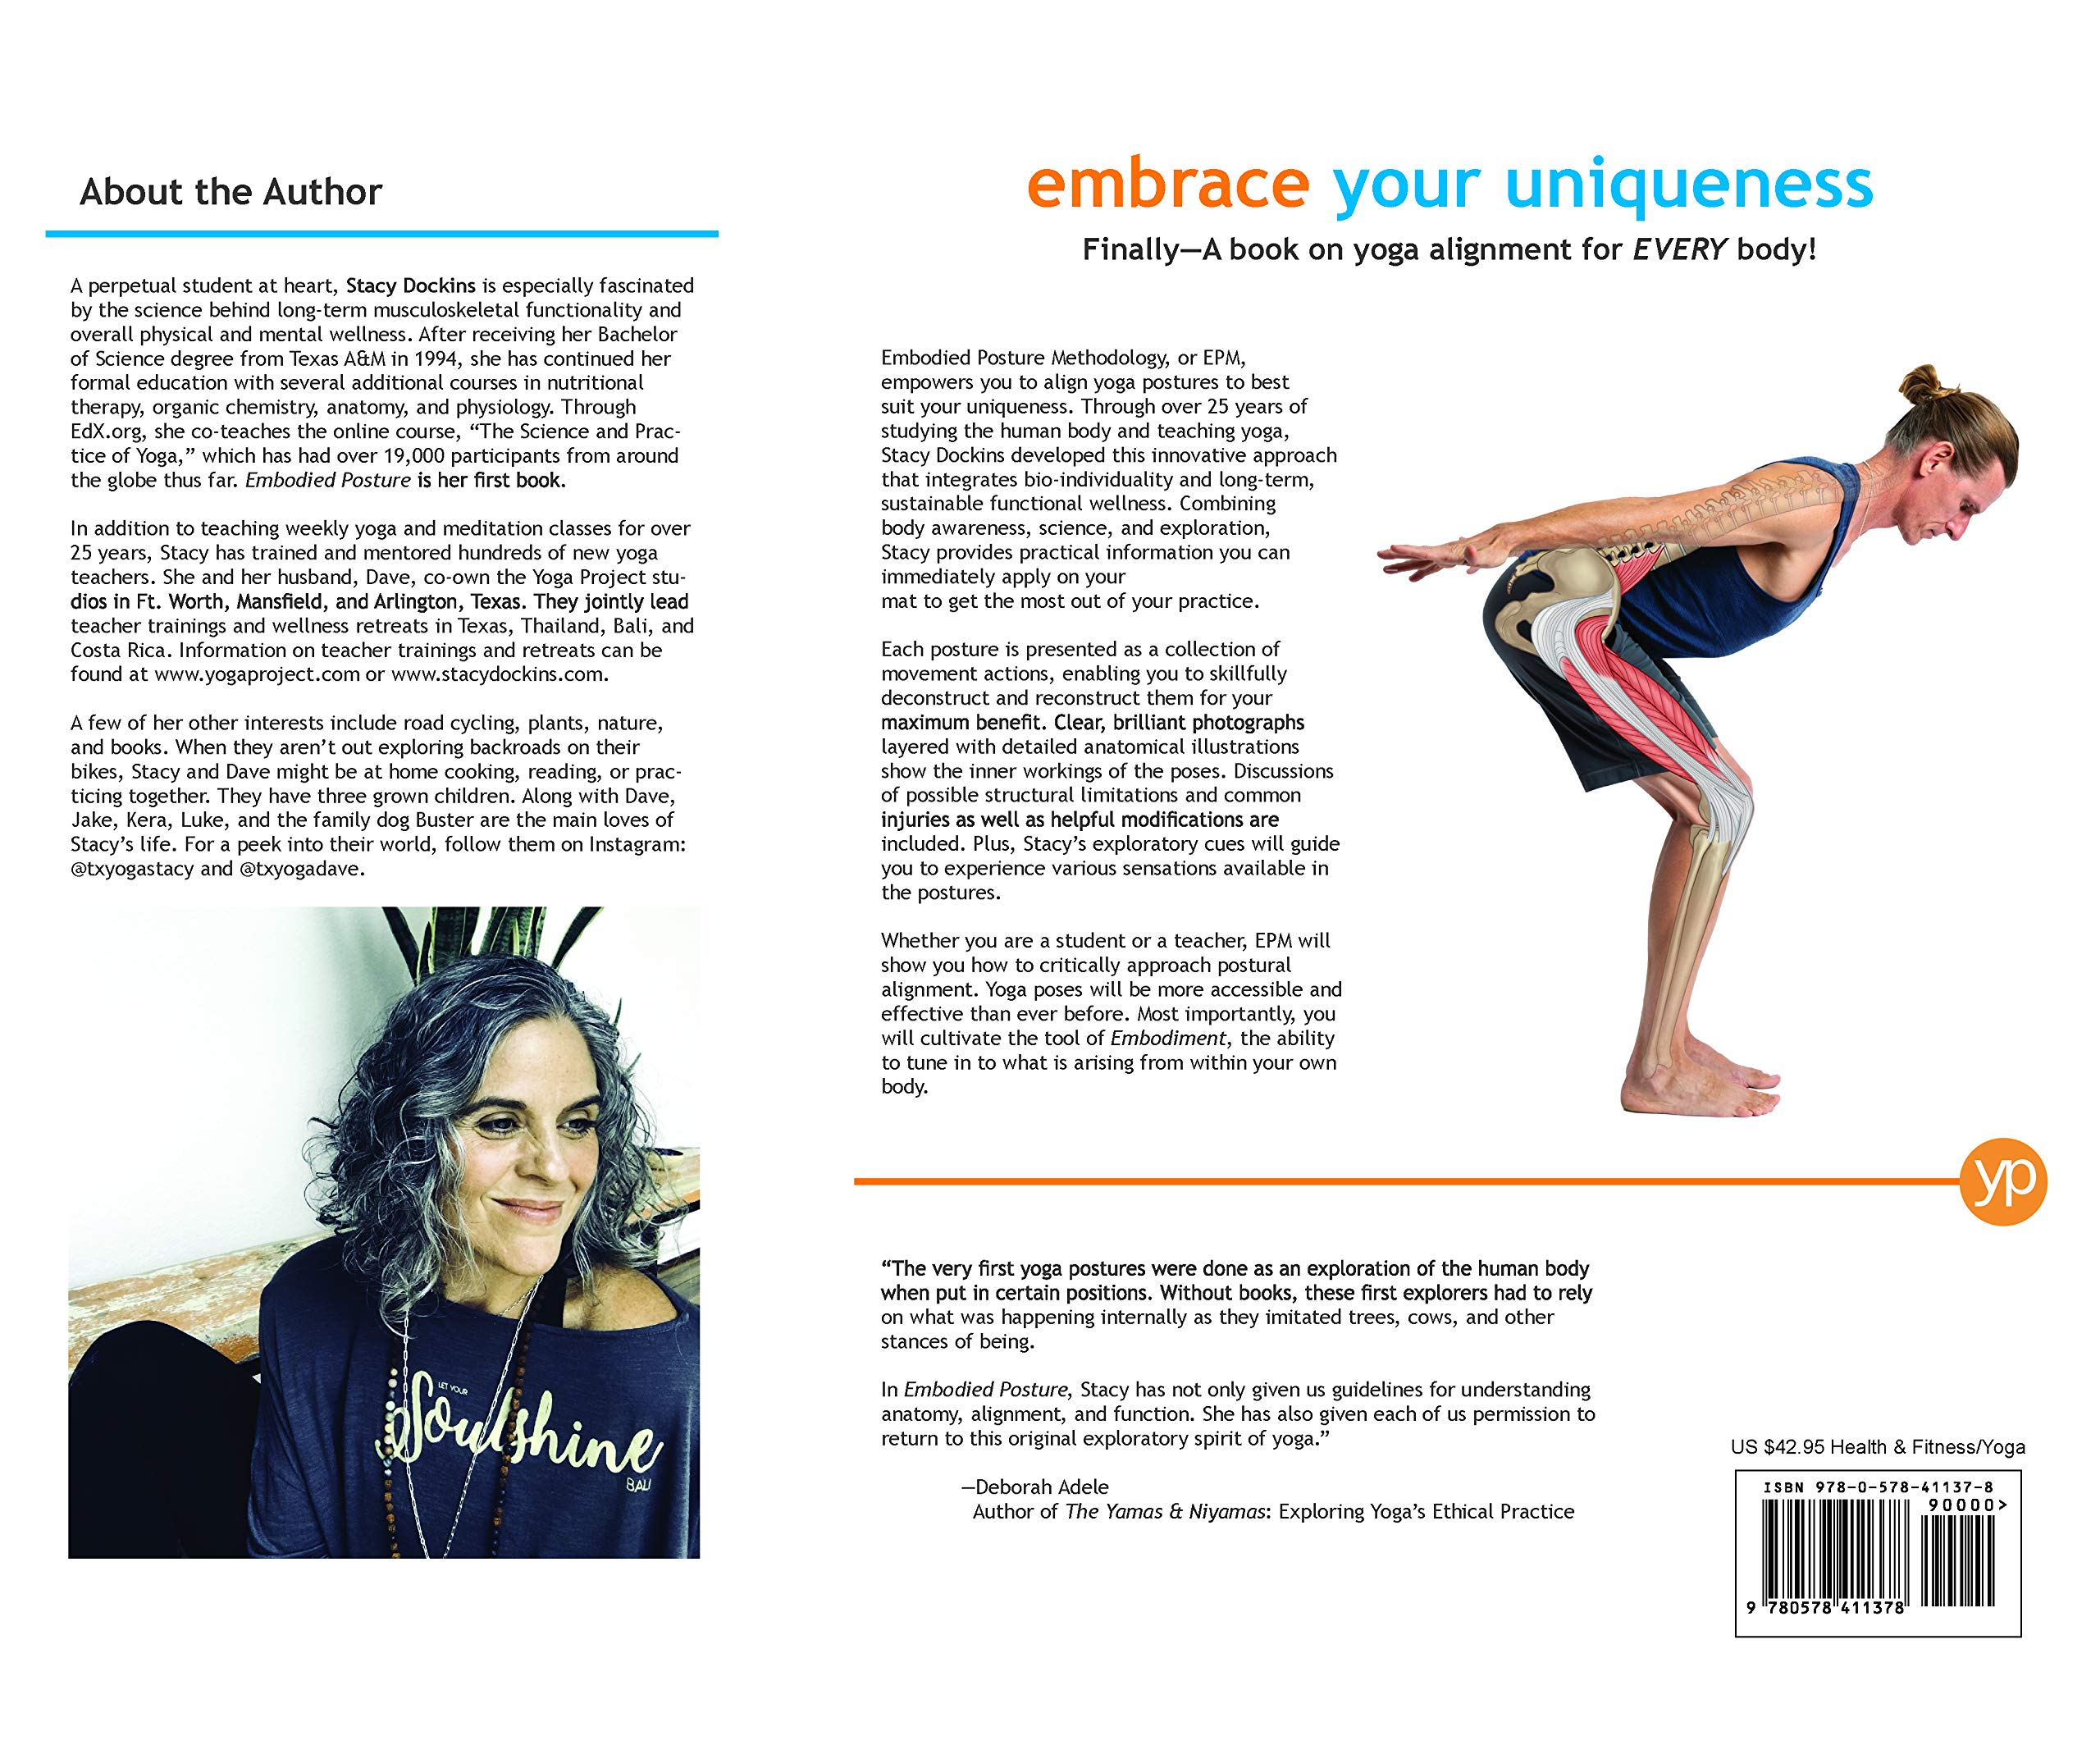 Embodied Posture Your Unique Body And Yoga Stacy Dockins Marie Gonzalez Emily Evans Jake Dockins Photographer Emily Evans Jake Dockins Photographer 9780578411378 Amazon Com Books